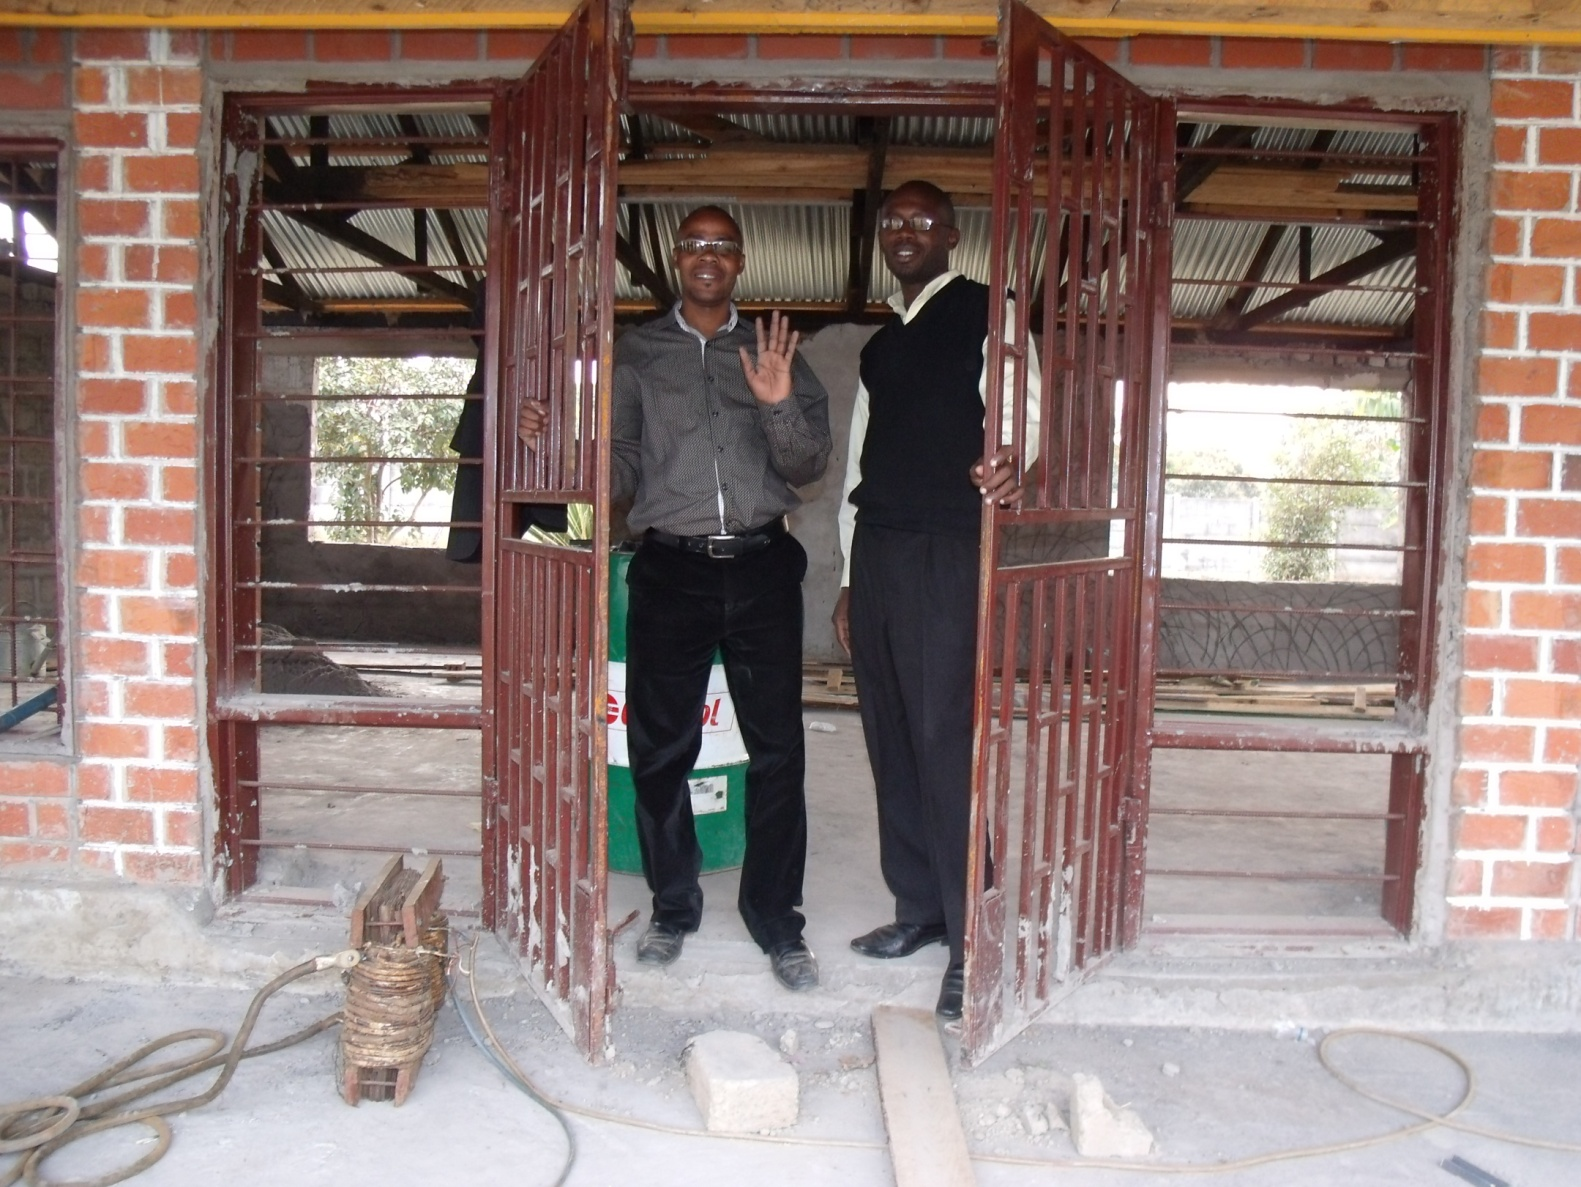 (L-R) Stanley Mulenga CAM director with one of the inspectors from the ministry of health in Kitwe